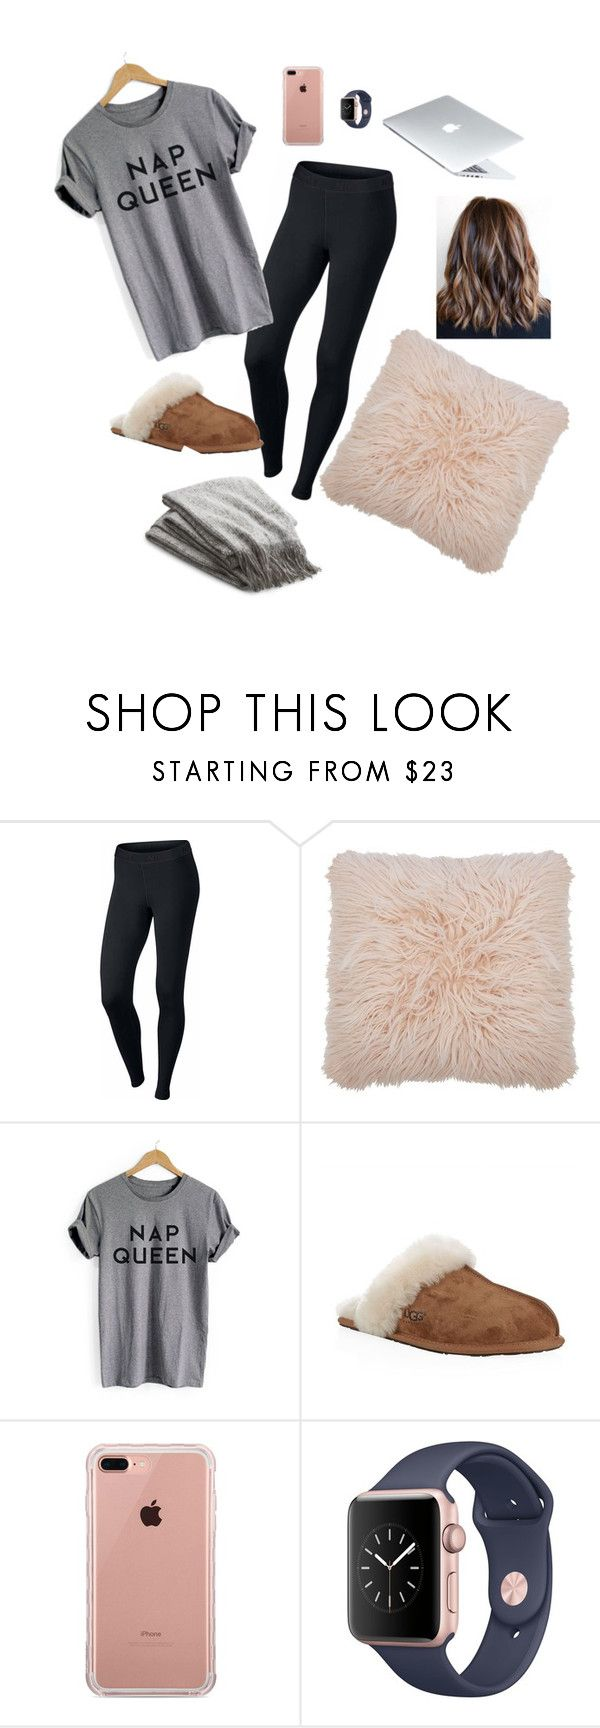 lazy day by gabriellaallen on Polyvore featuring NIKE, UGG Australia, Belkin, M&Co and Crate and Barrel